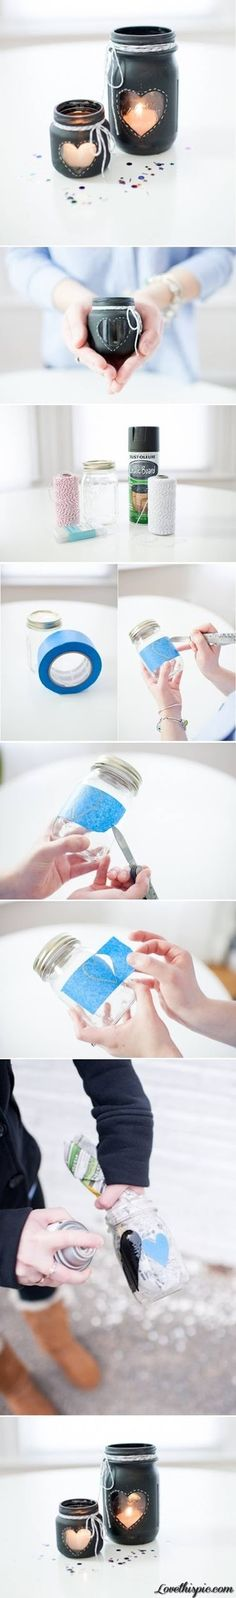 #DIY Glass Jar Candlestick - Cool And Easy. Do it NOW. For More DIY Projects Click On Image.